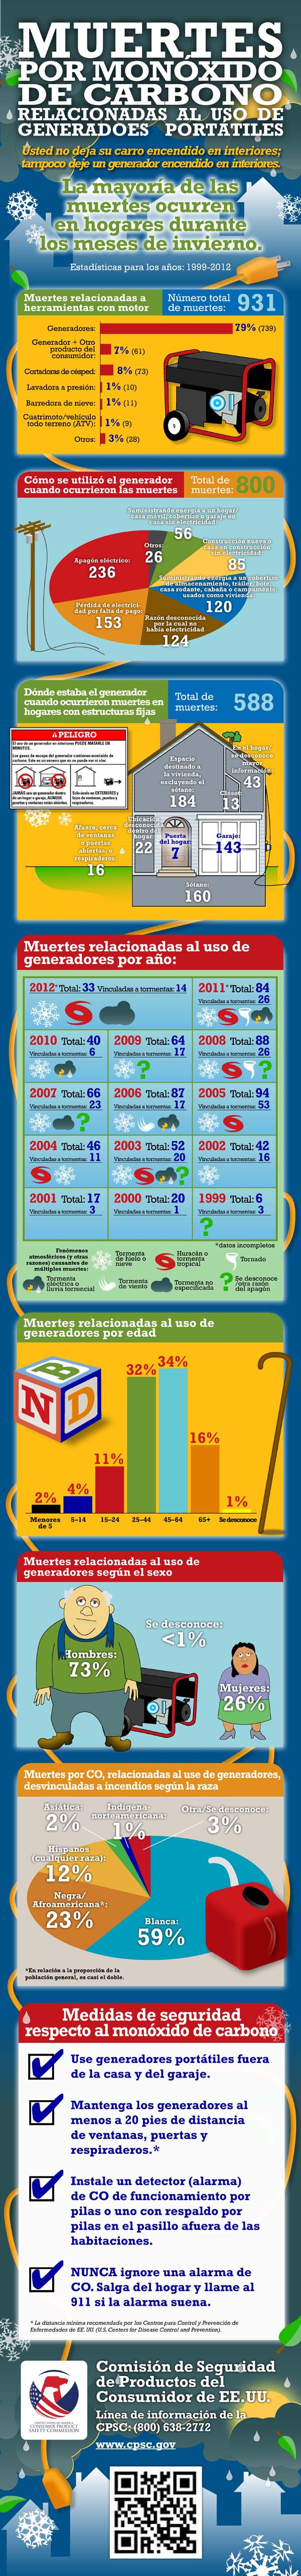 CO_Infographic_Spanish_600wide